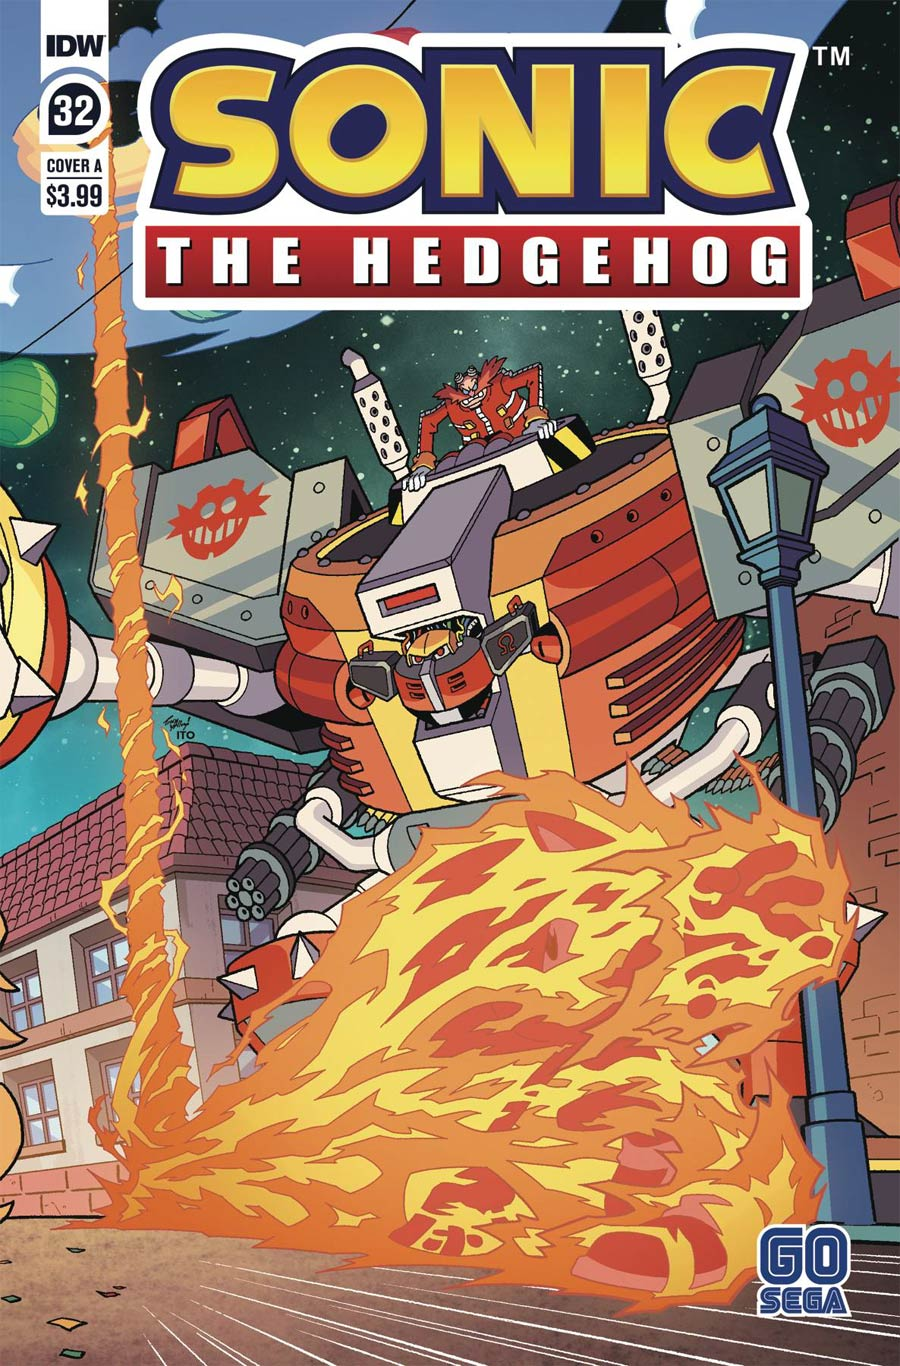 Sonic The Hedgehog Vol 3 #32 Cover A Regular Tracy Yardley Cover